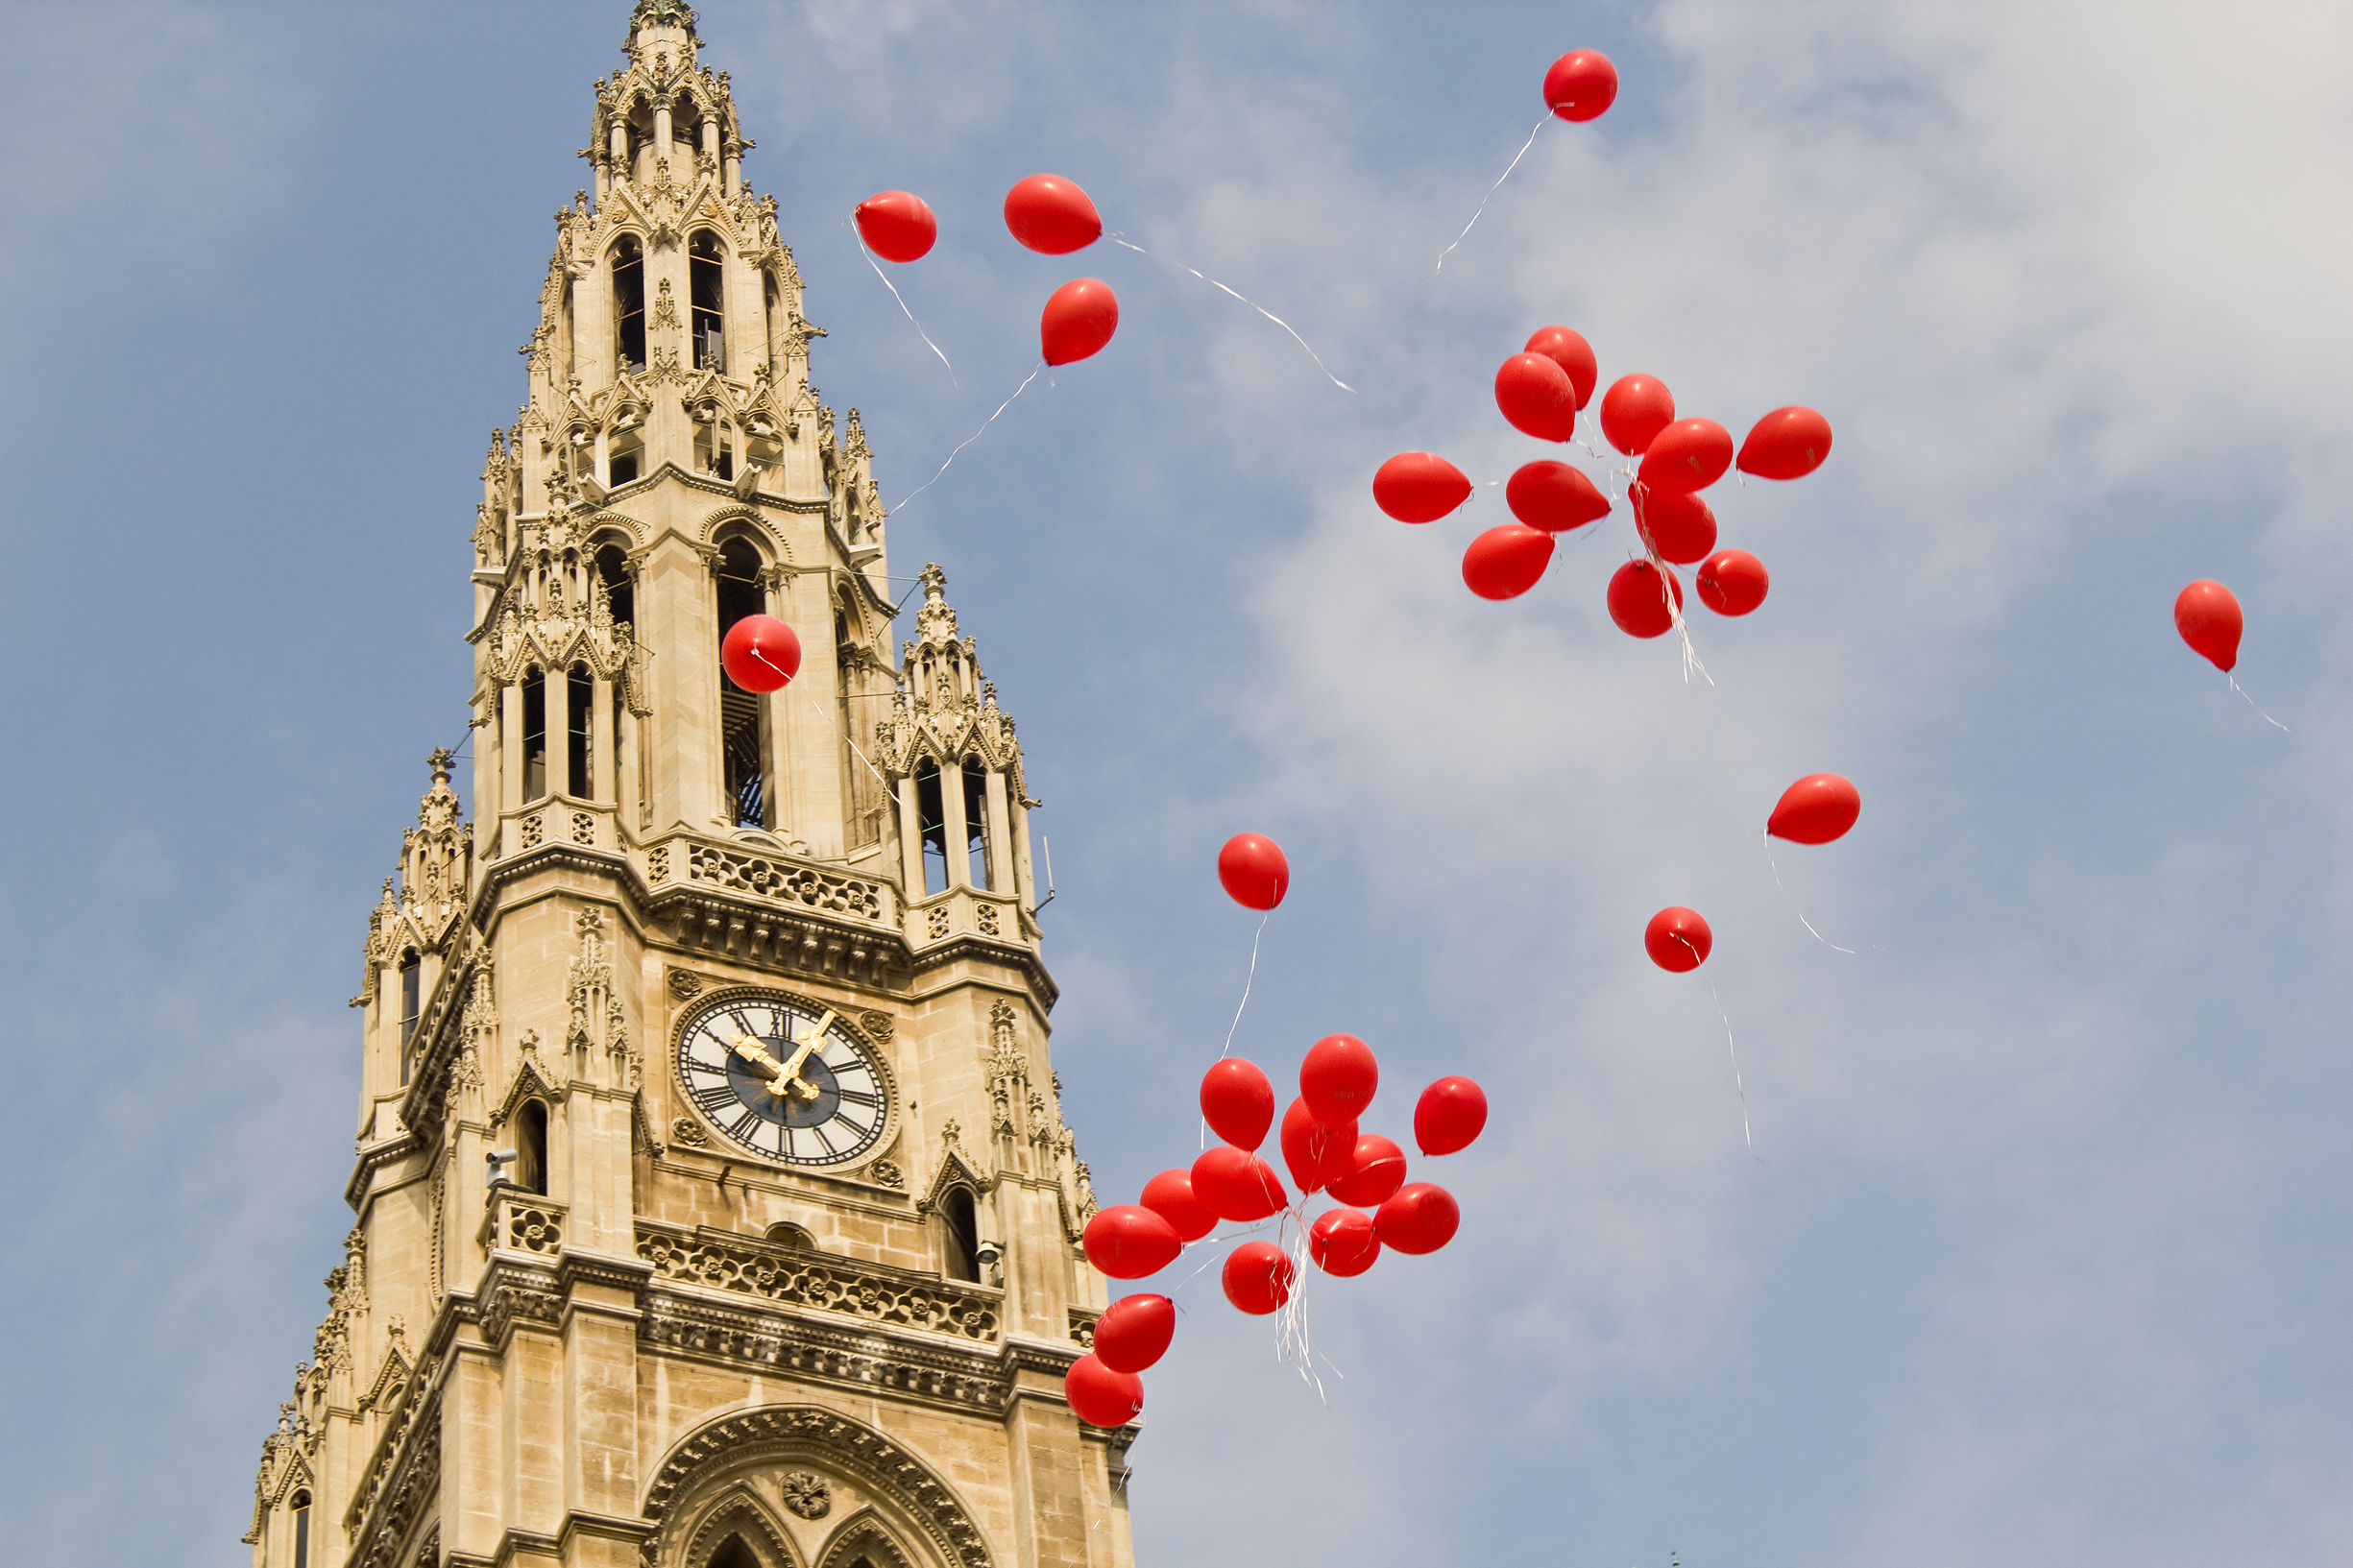 wedding send off ideas wedding send off ideas Guests can hold balloons as they create a guard of honour and if helium balloons are organised release them as the bride and groom exit the premises